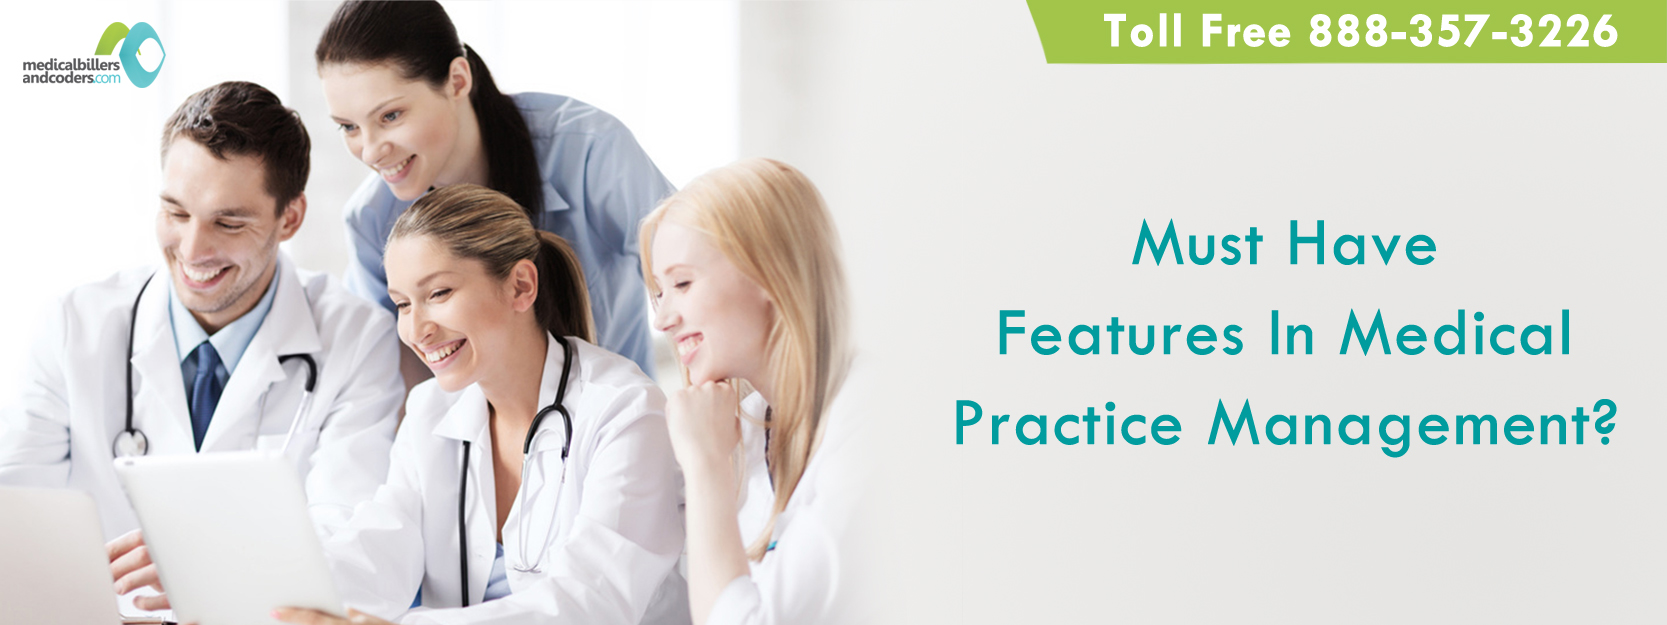 Must-Have-Features-In-Medical-Practice-Management-?